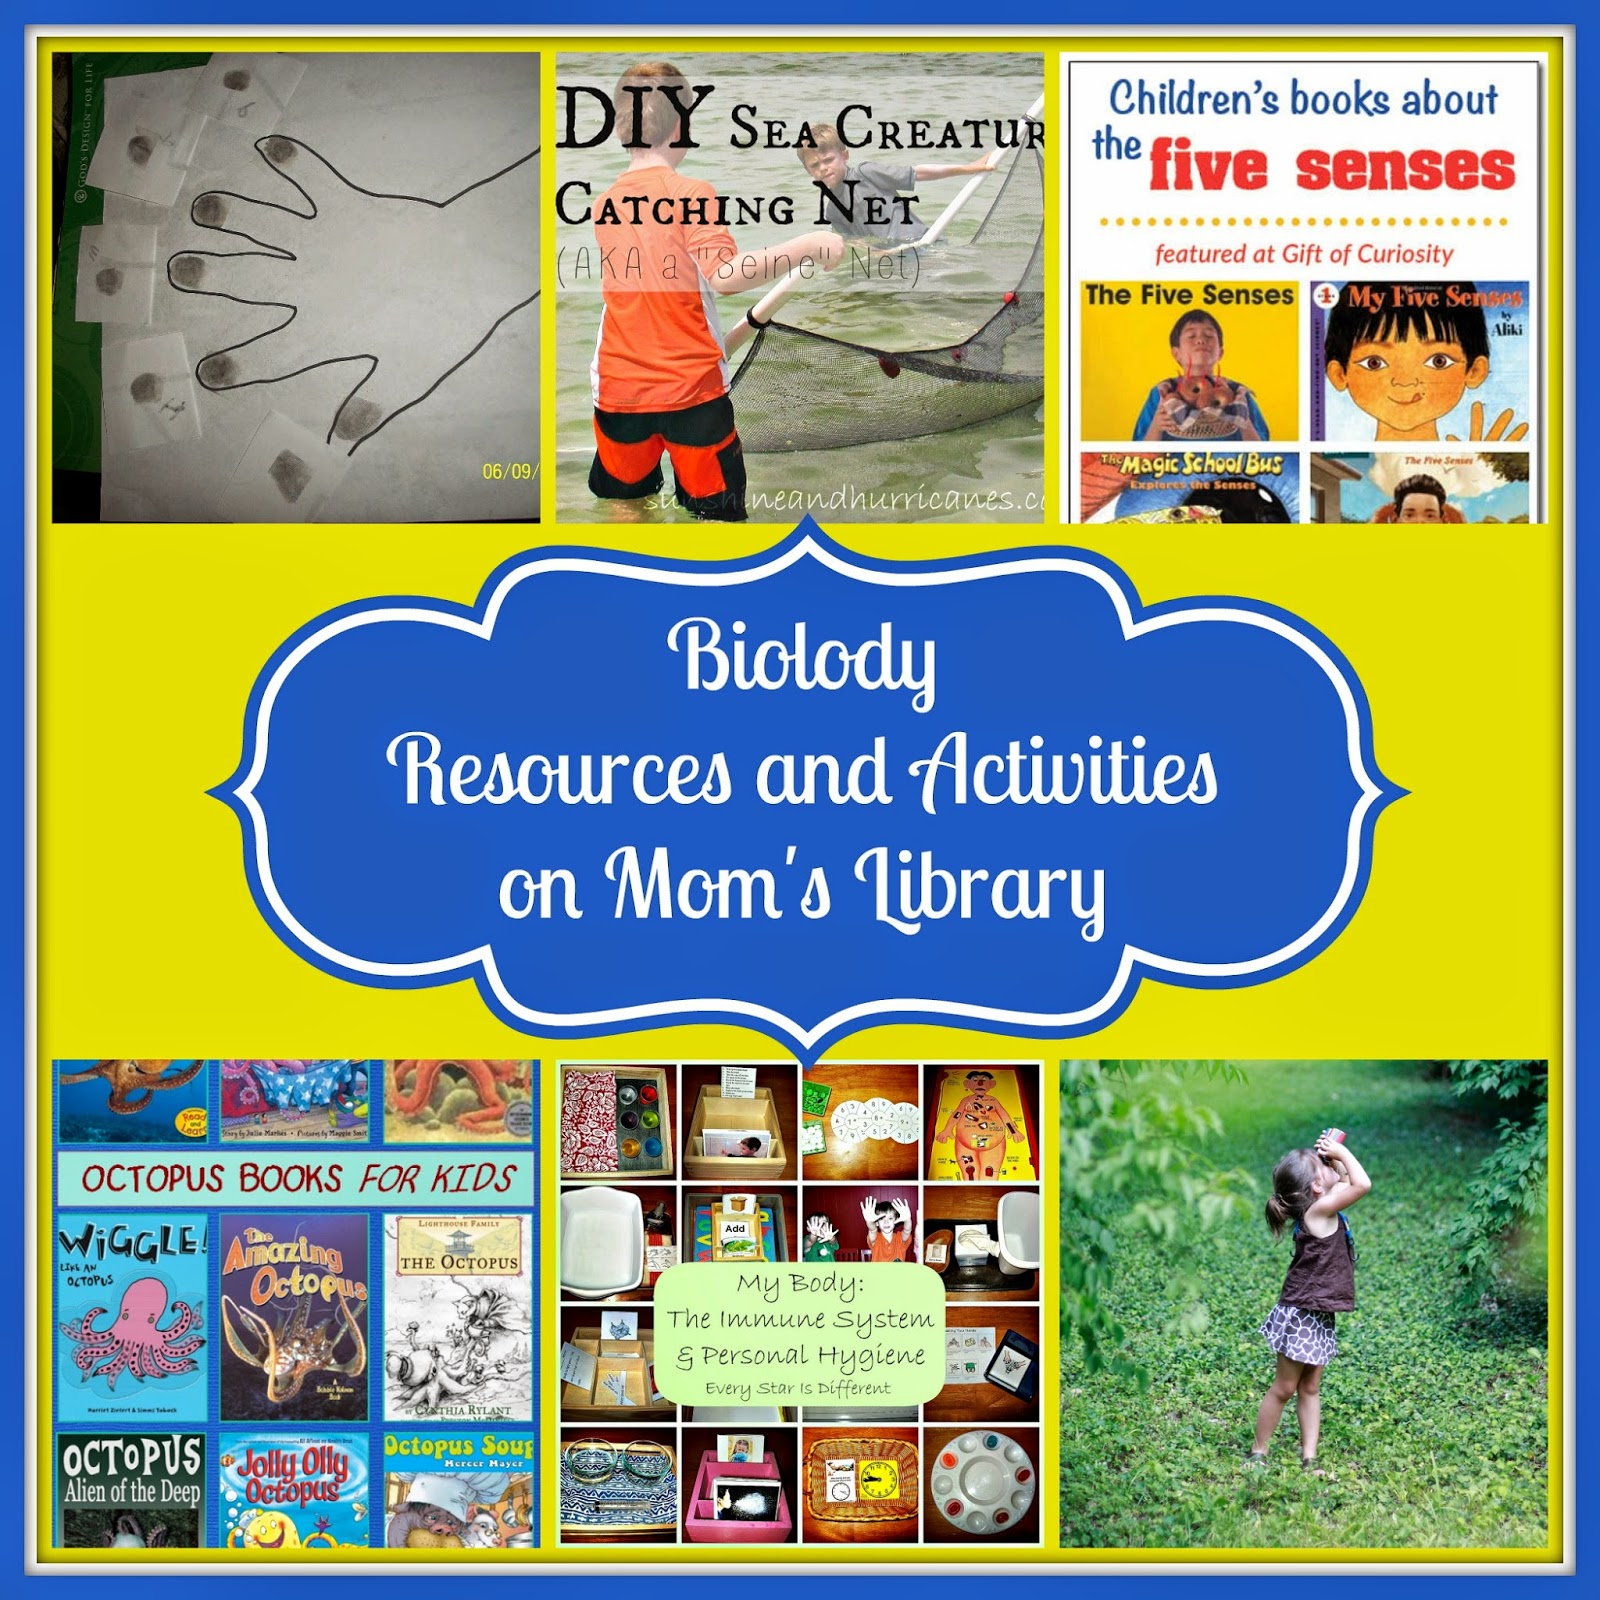 Kid's Biology Resources at Mom's Library